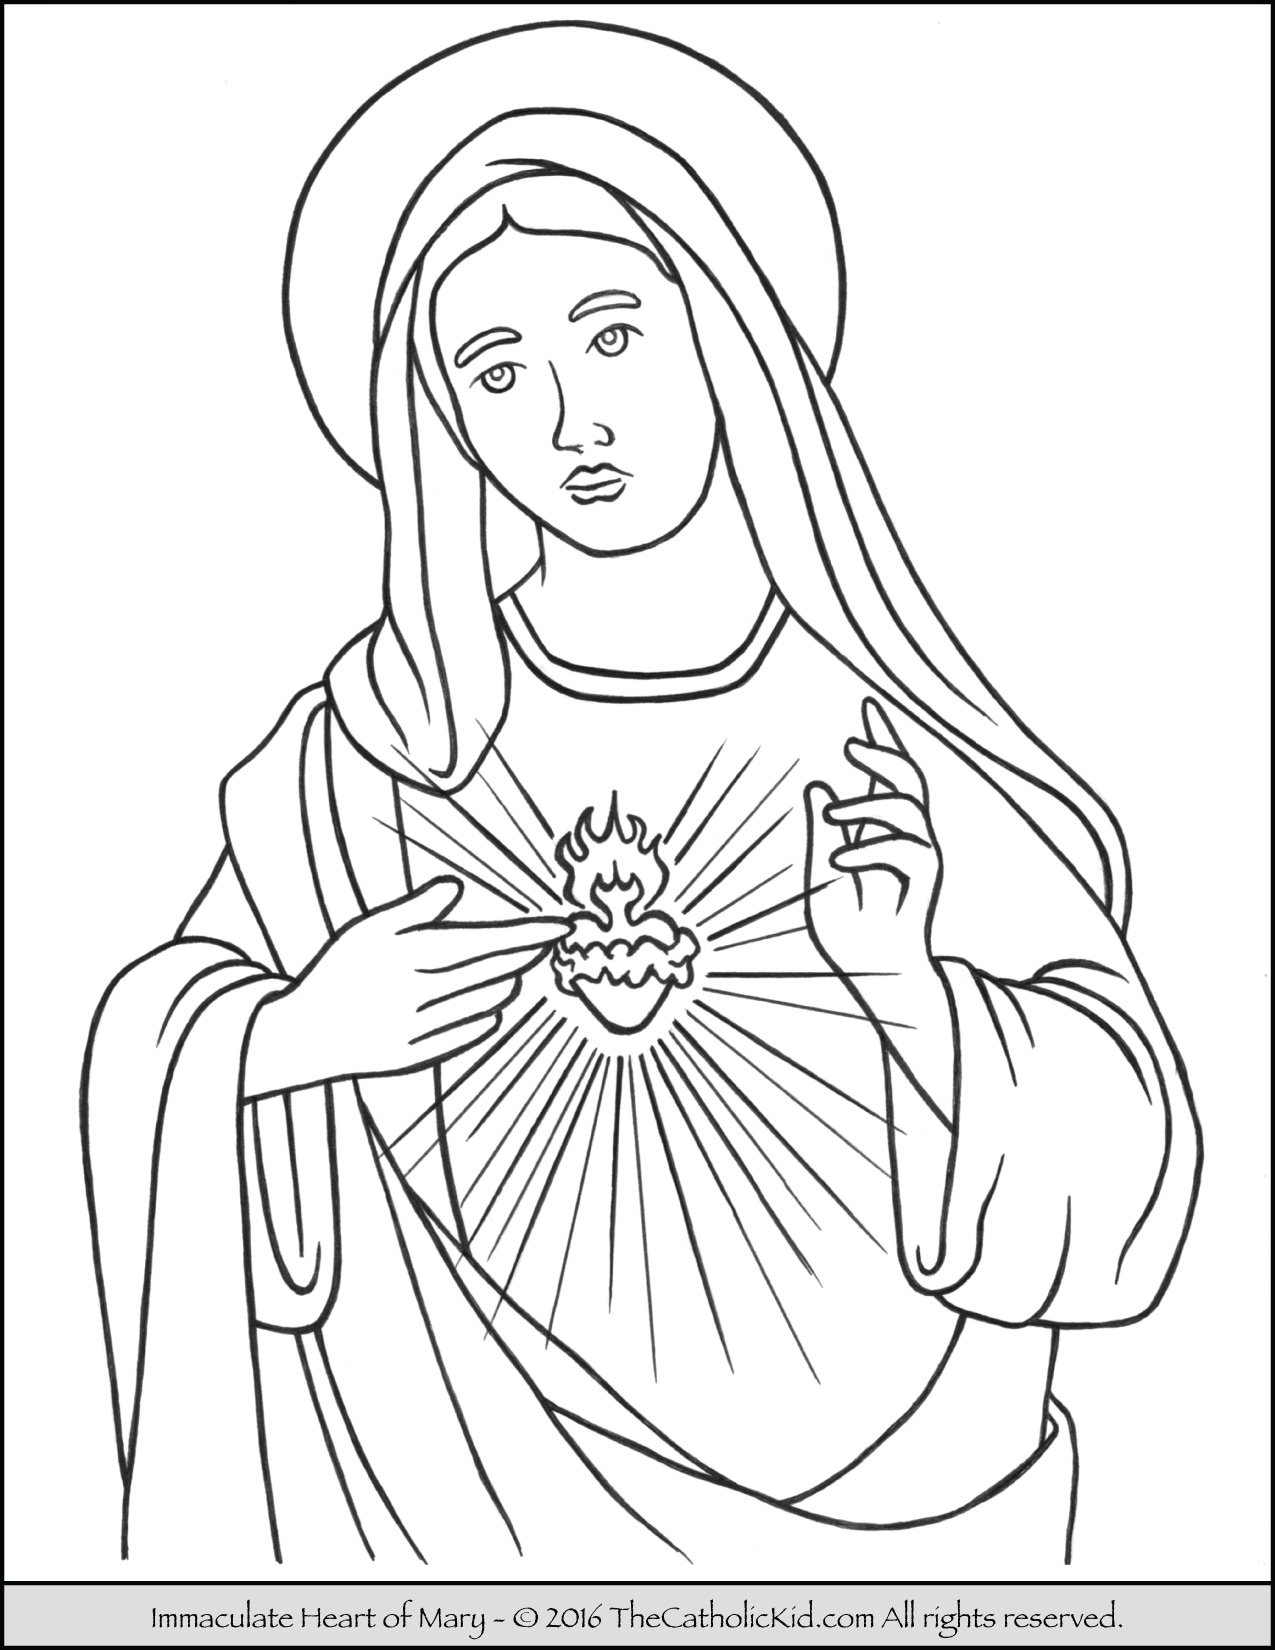 saint mary coloring pack thecatholickid immaculate heart of sheets for halloween nature coloring pages Virgin Mary Coloring Page